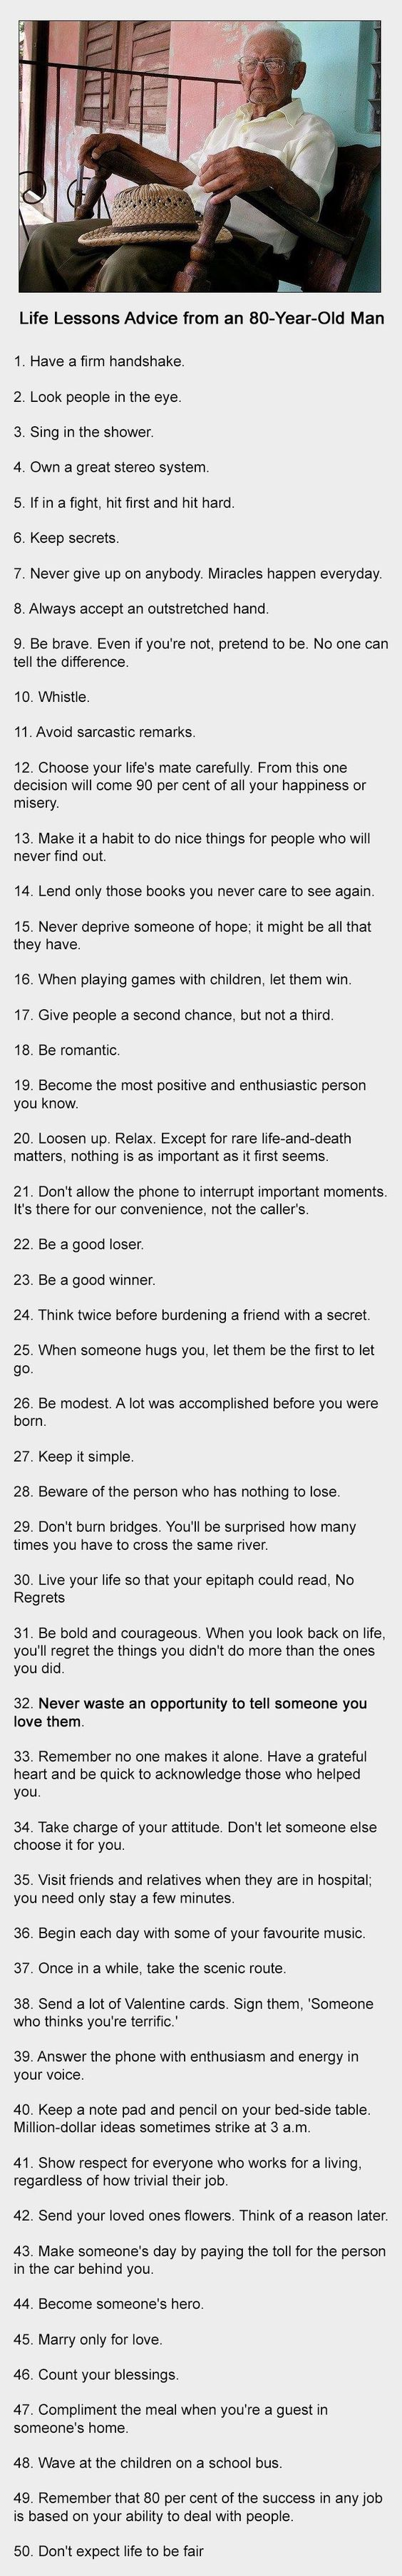 Fifty Life Lessons